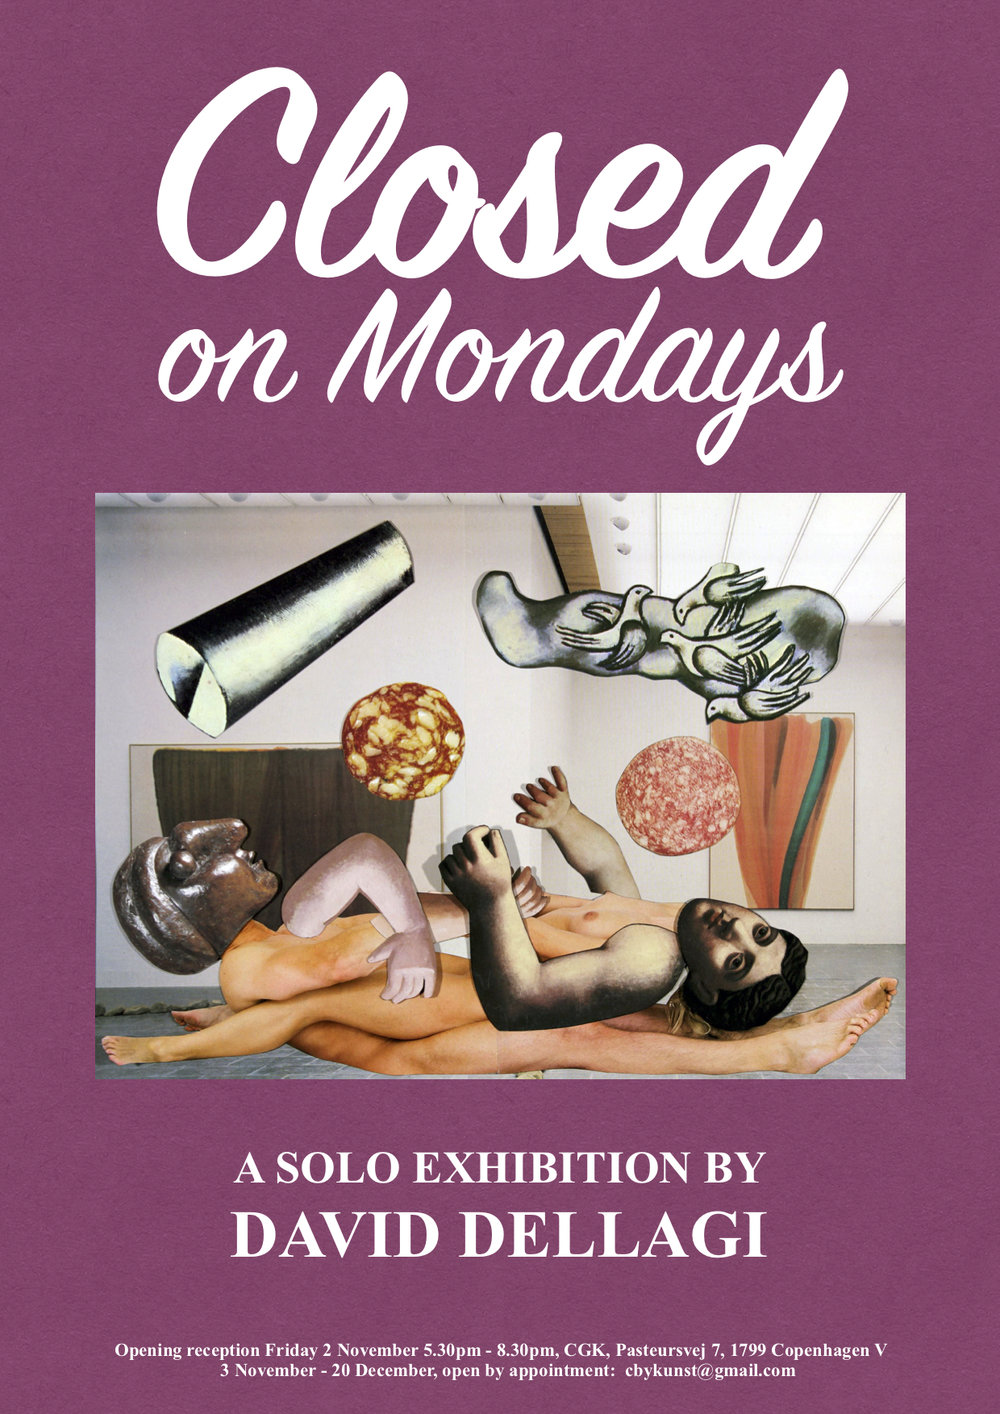 Closed on Mondays poster , 2018. CGK Centre for Contemporary Art, Copenhagen, DK. Solo exhibition.